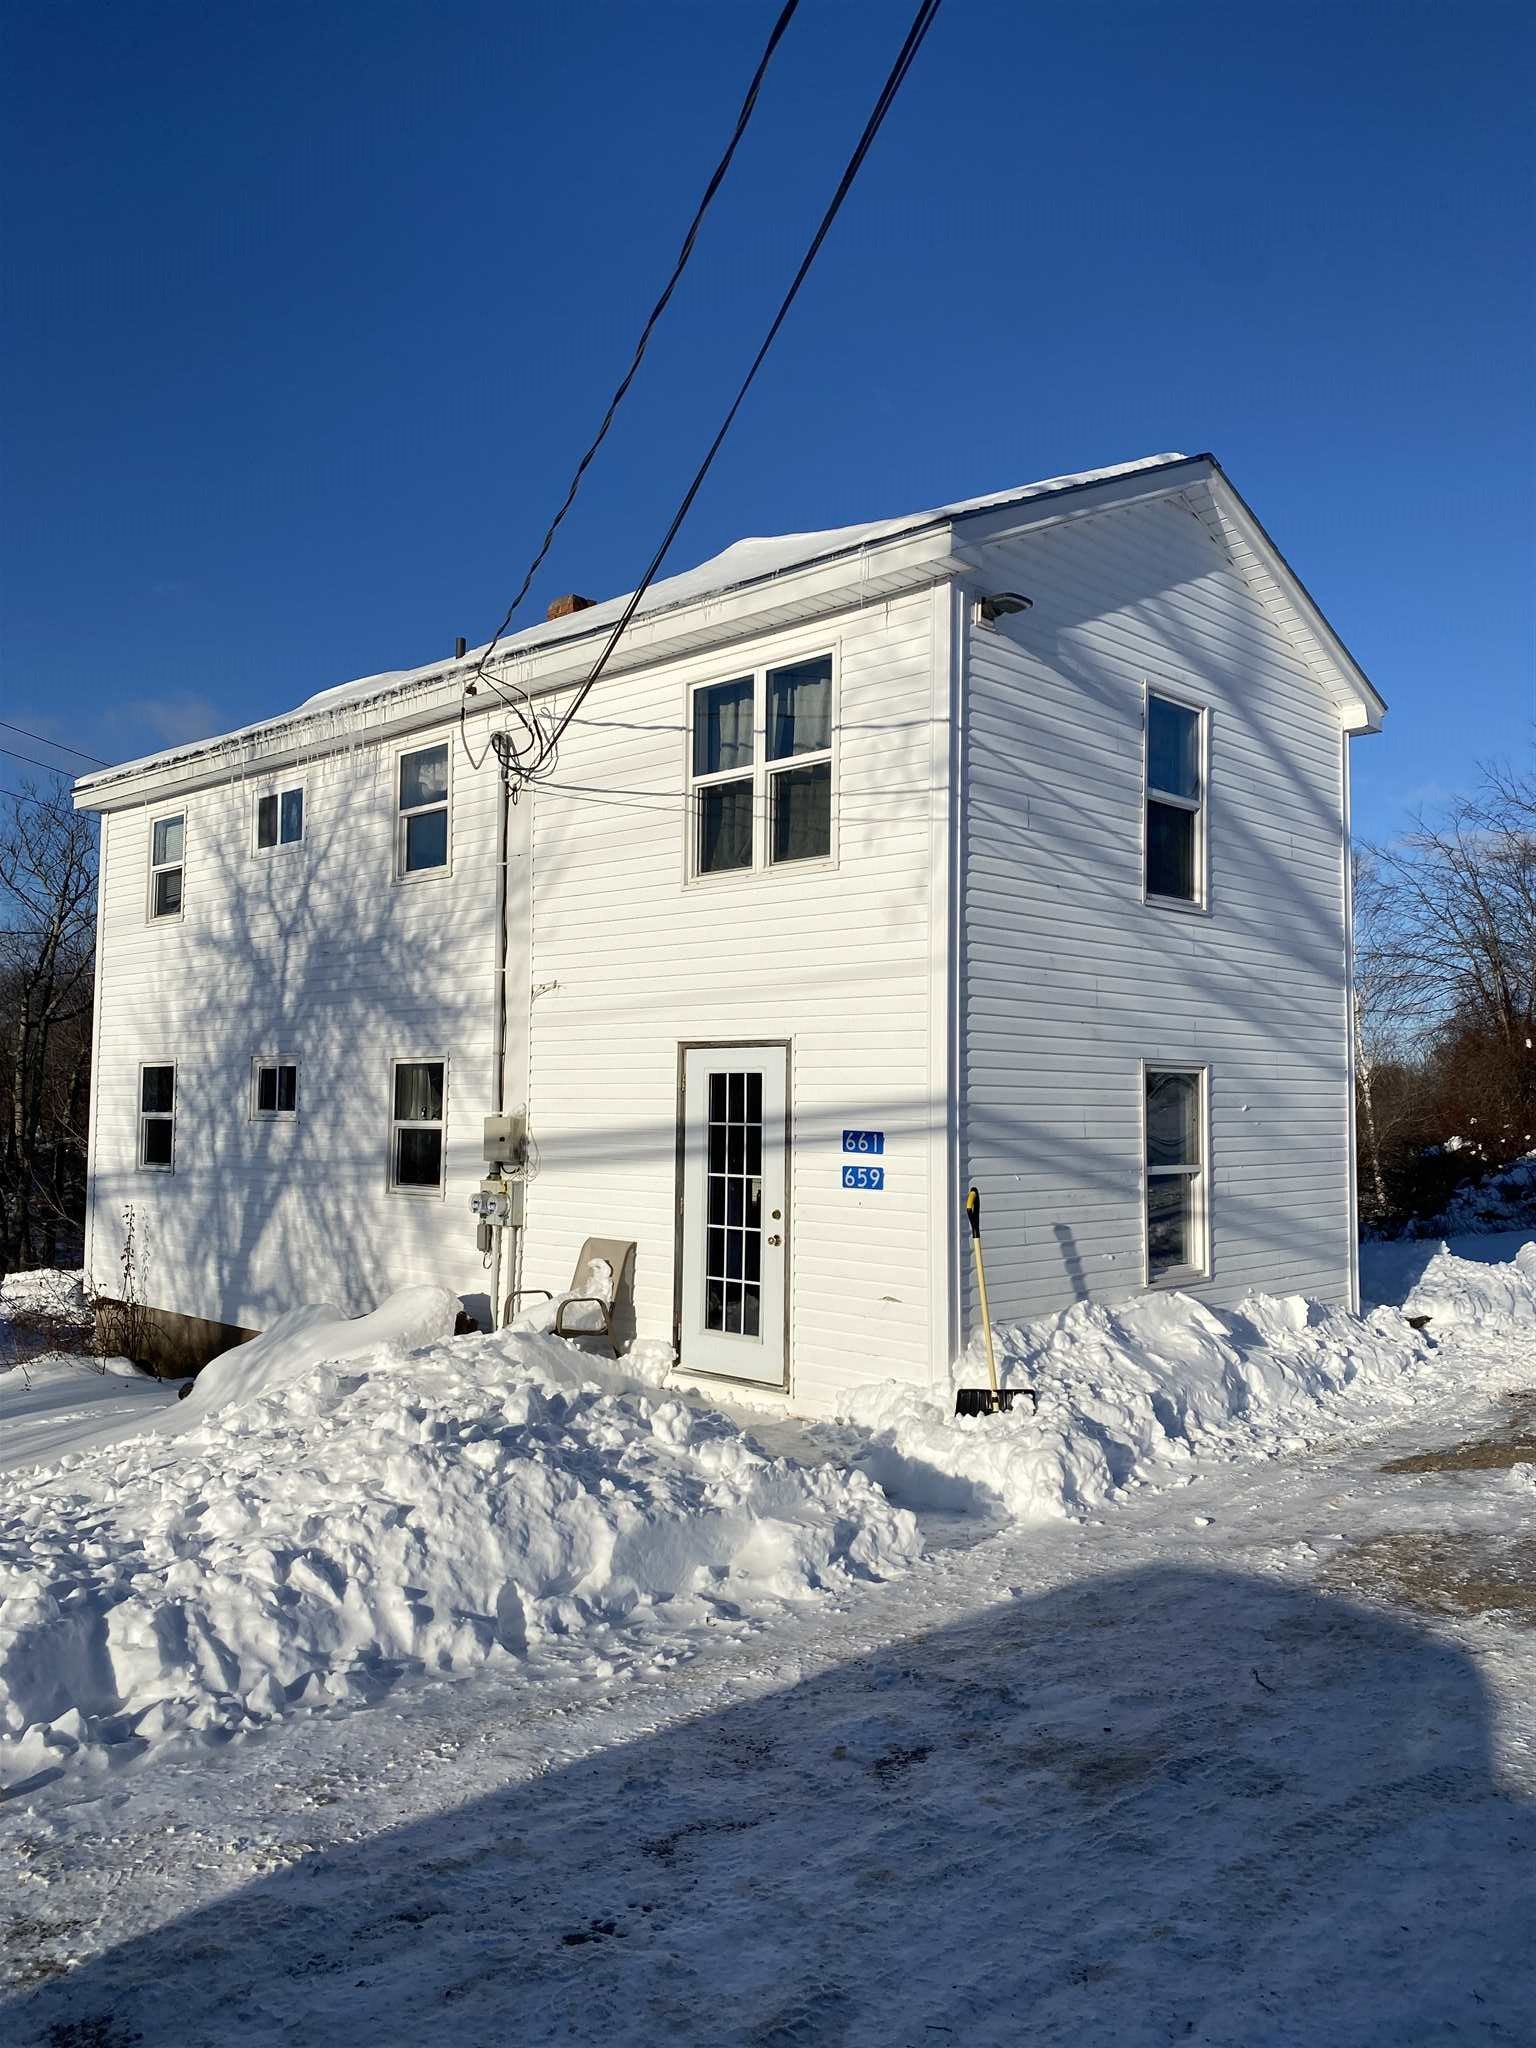 Main Photo: 659 & 661 Central Avenue in Greenwood: 404-Kings County Multi-Family for sale (Annapolis Valley)  : MLS®# 202102400